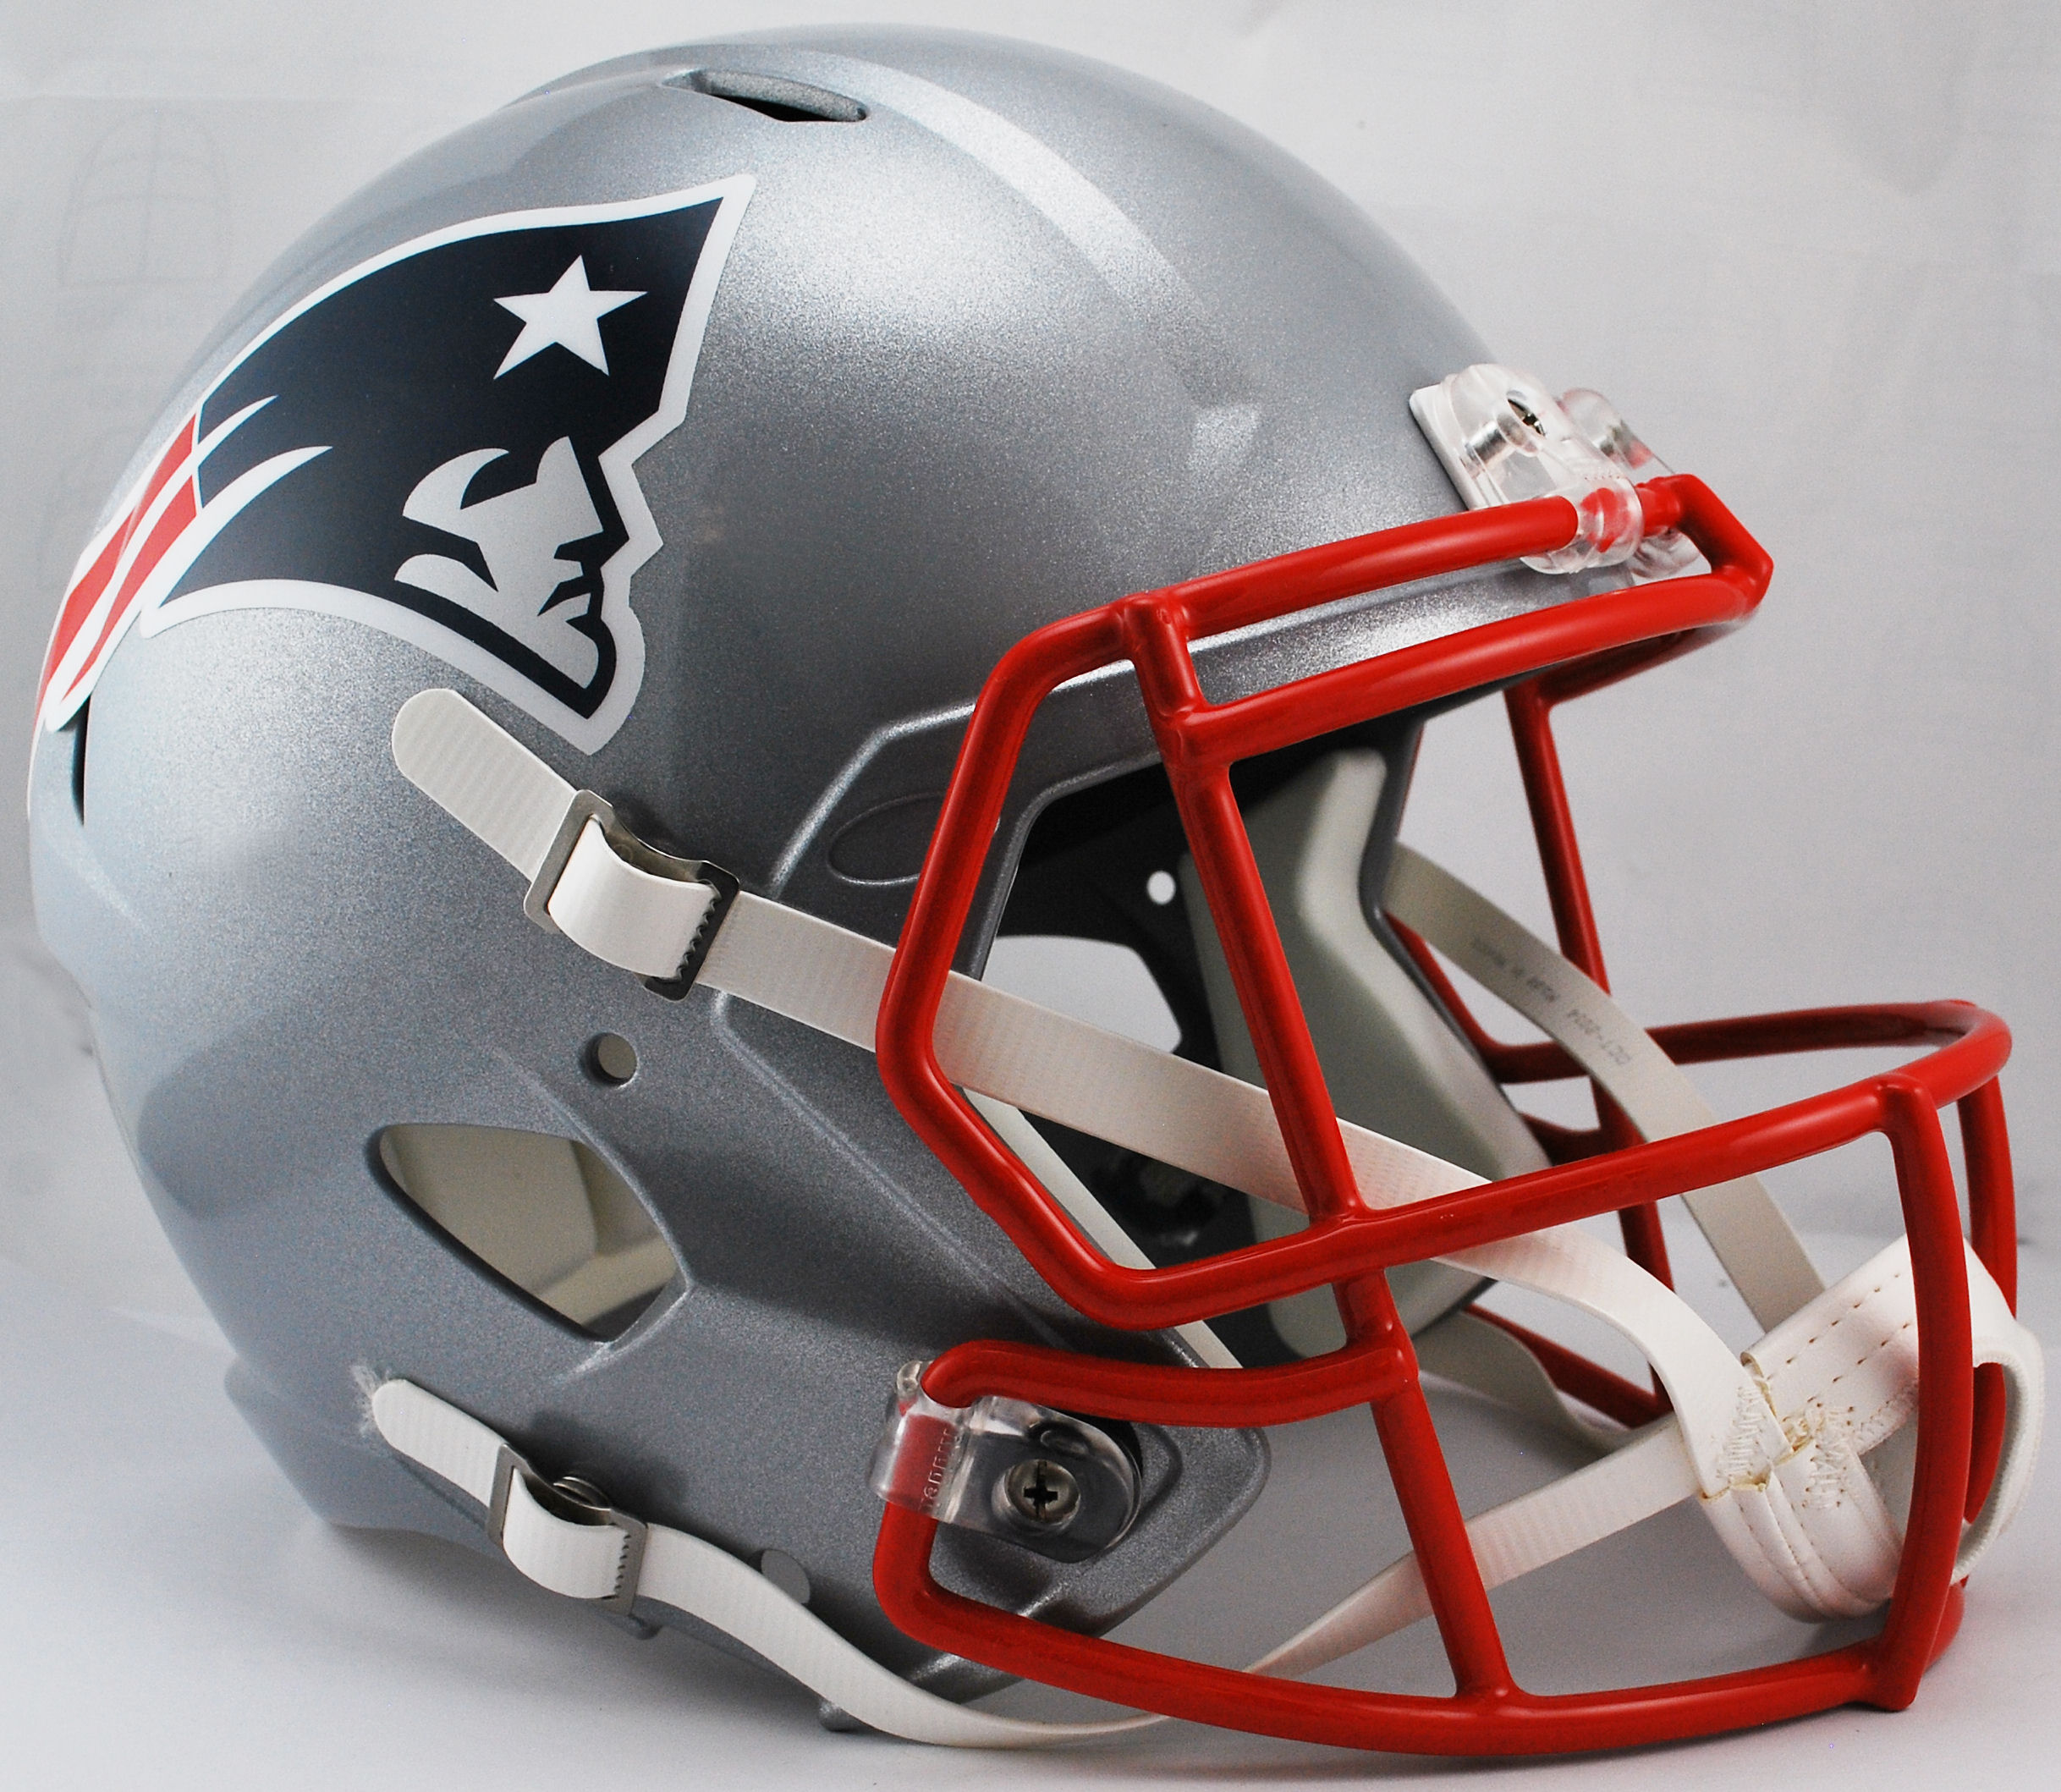 New England Patriots Speed Replica Football Helmet